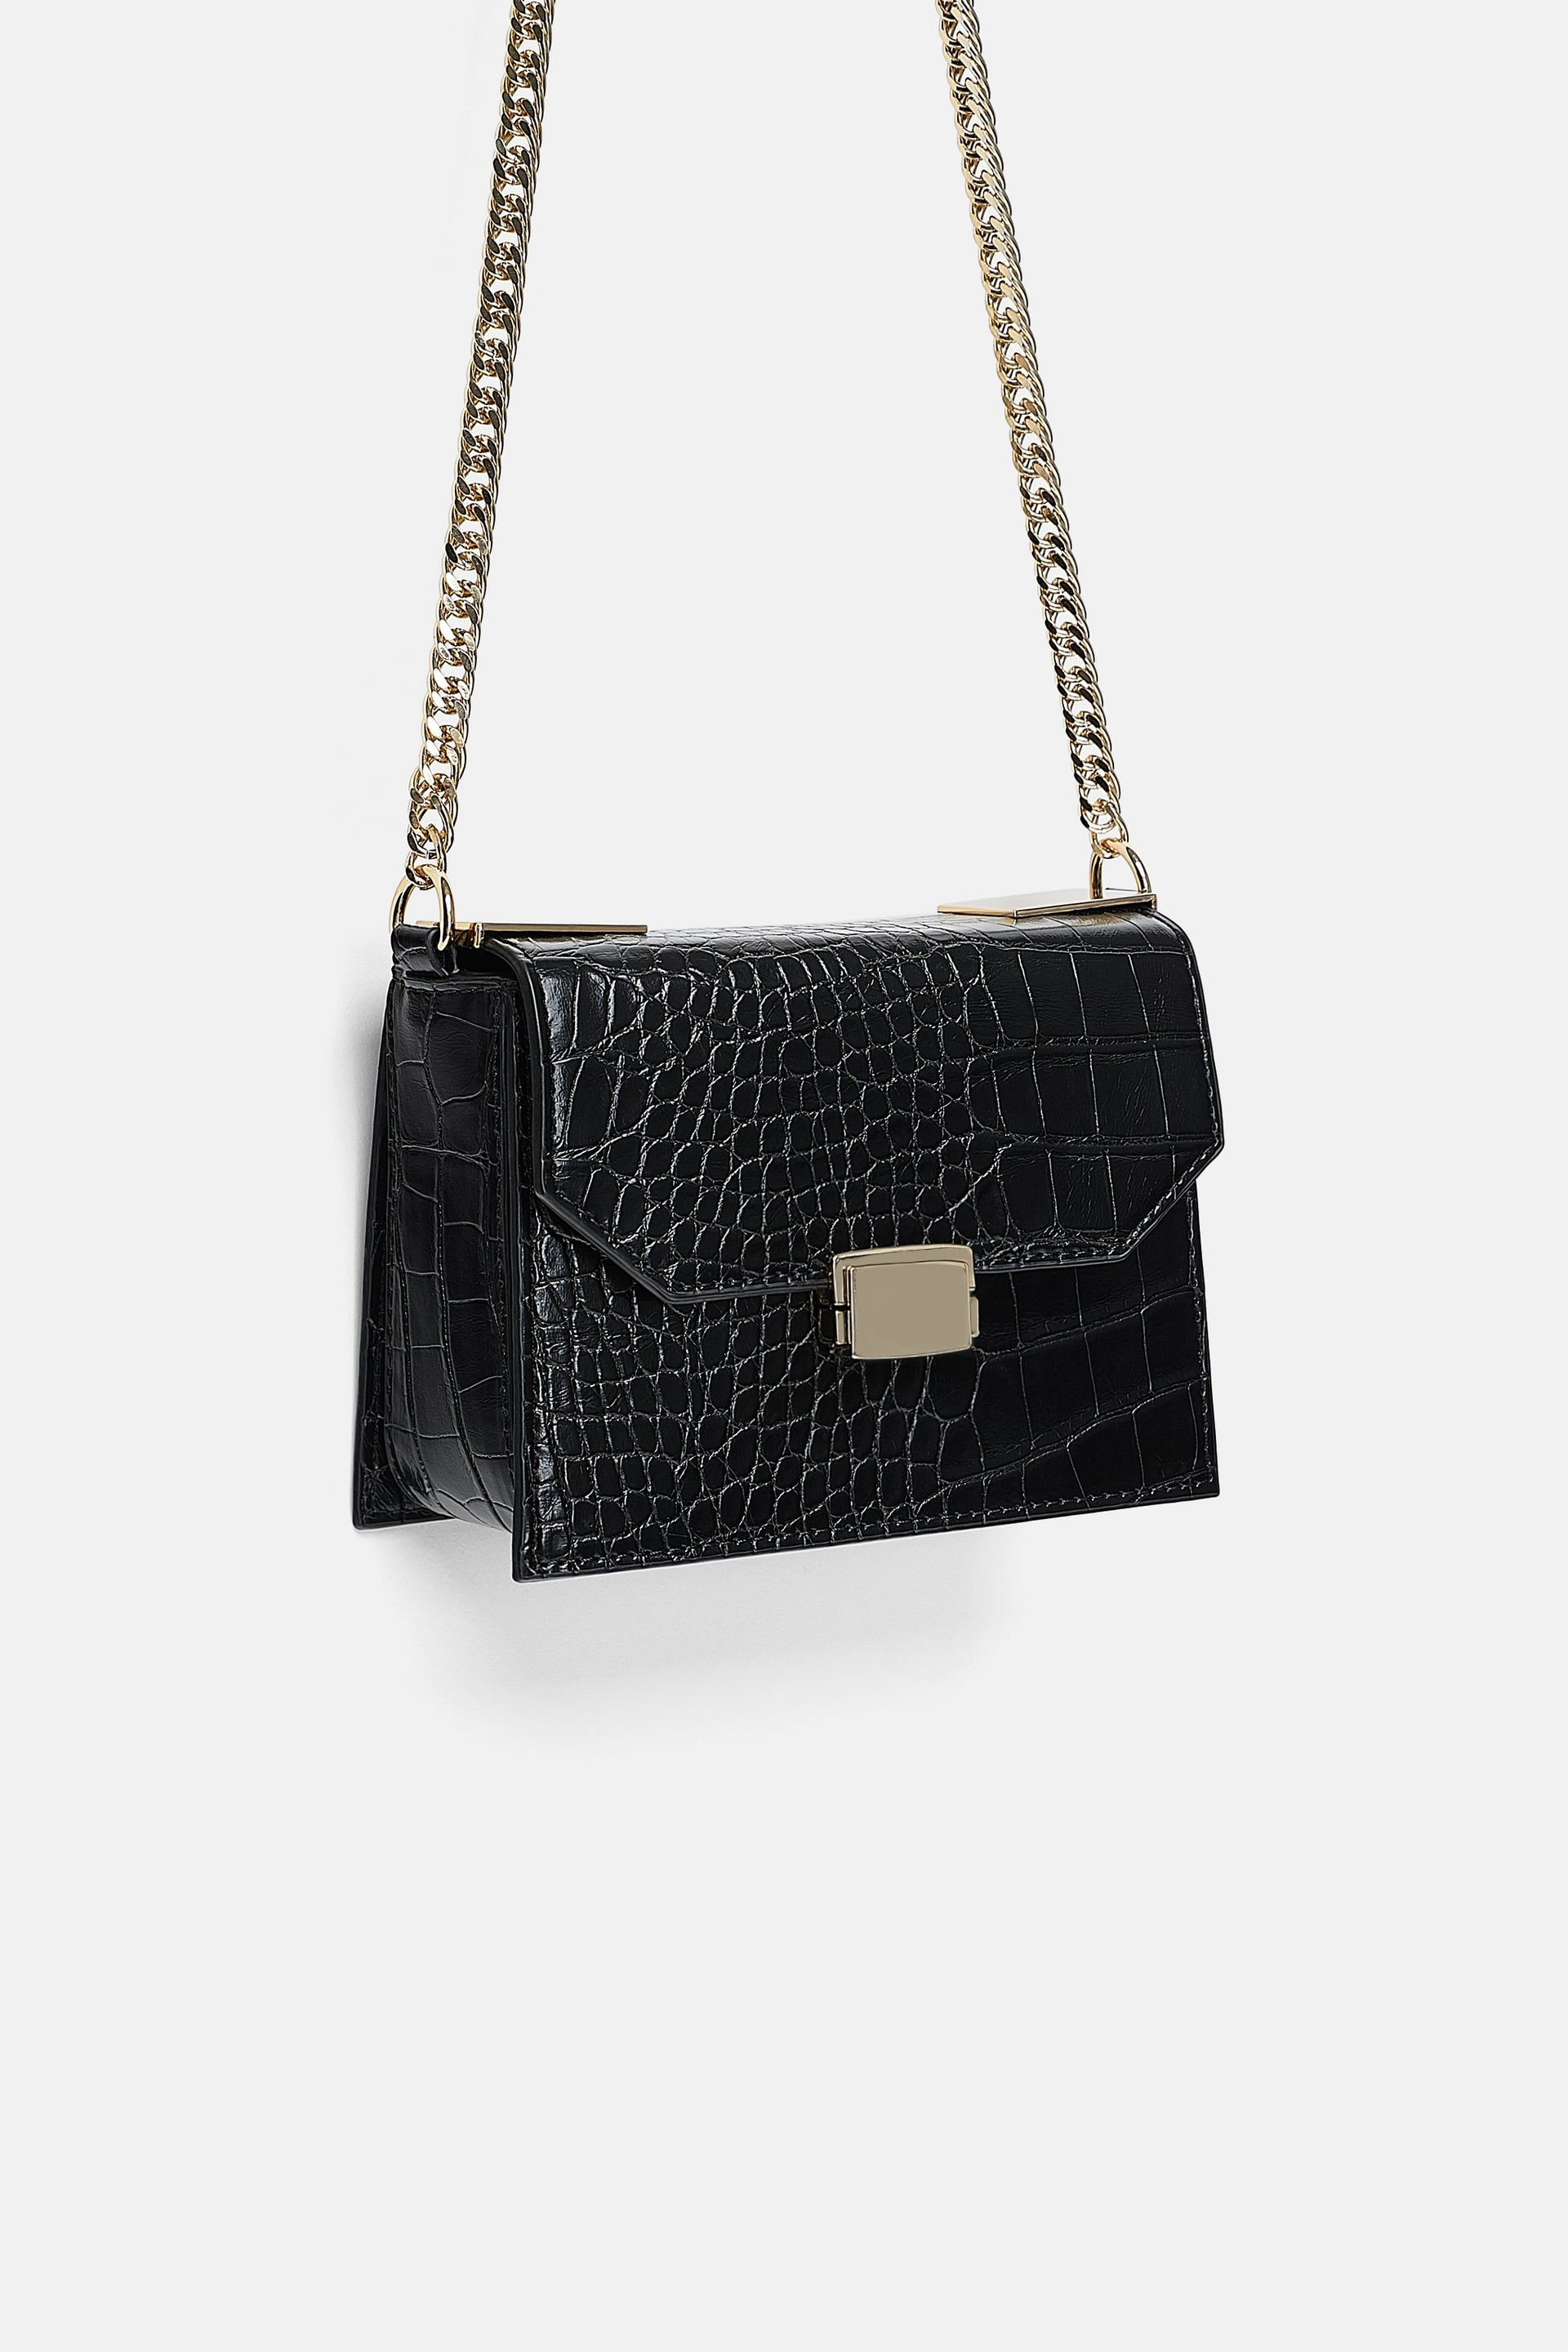 8b8c7ea4a2e0 Crocodile print crossbody bag in 2019 | Wish List. | Bags, Crossbody ...